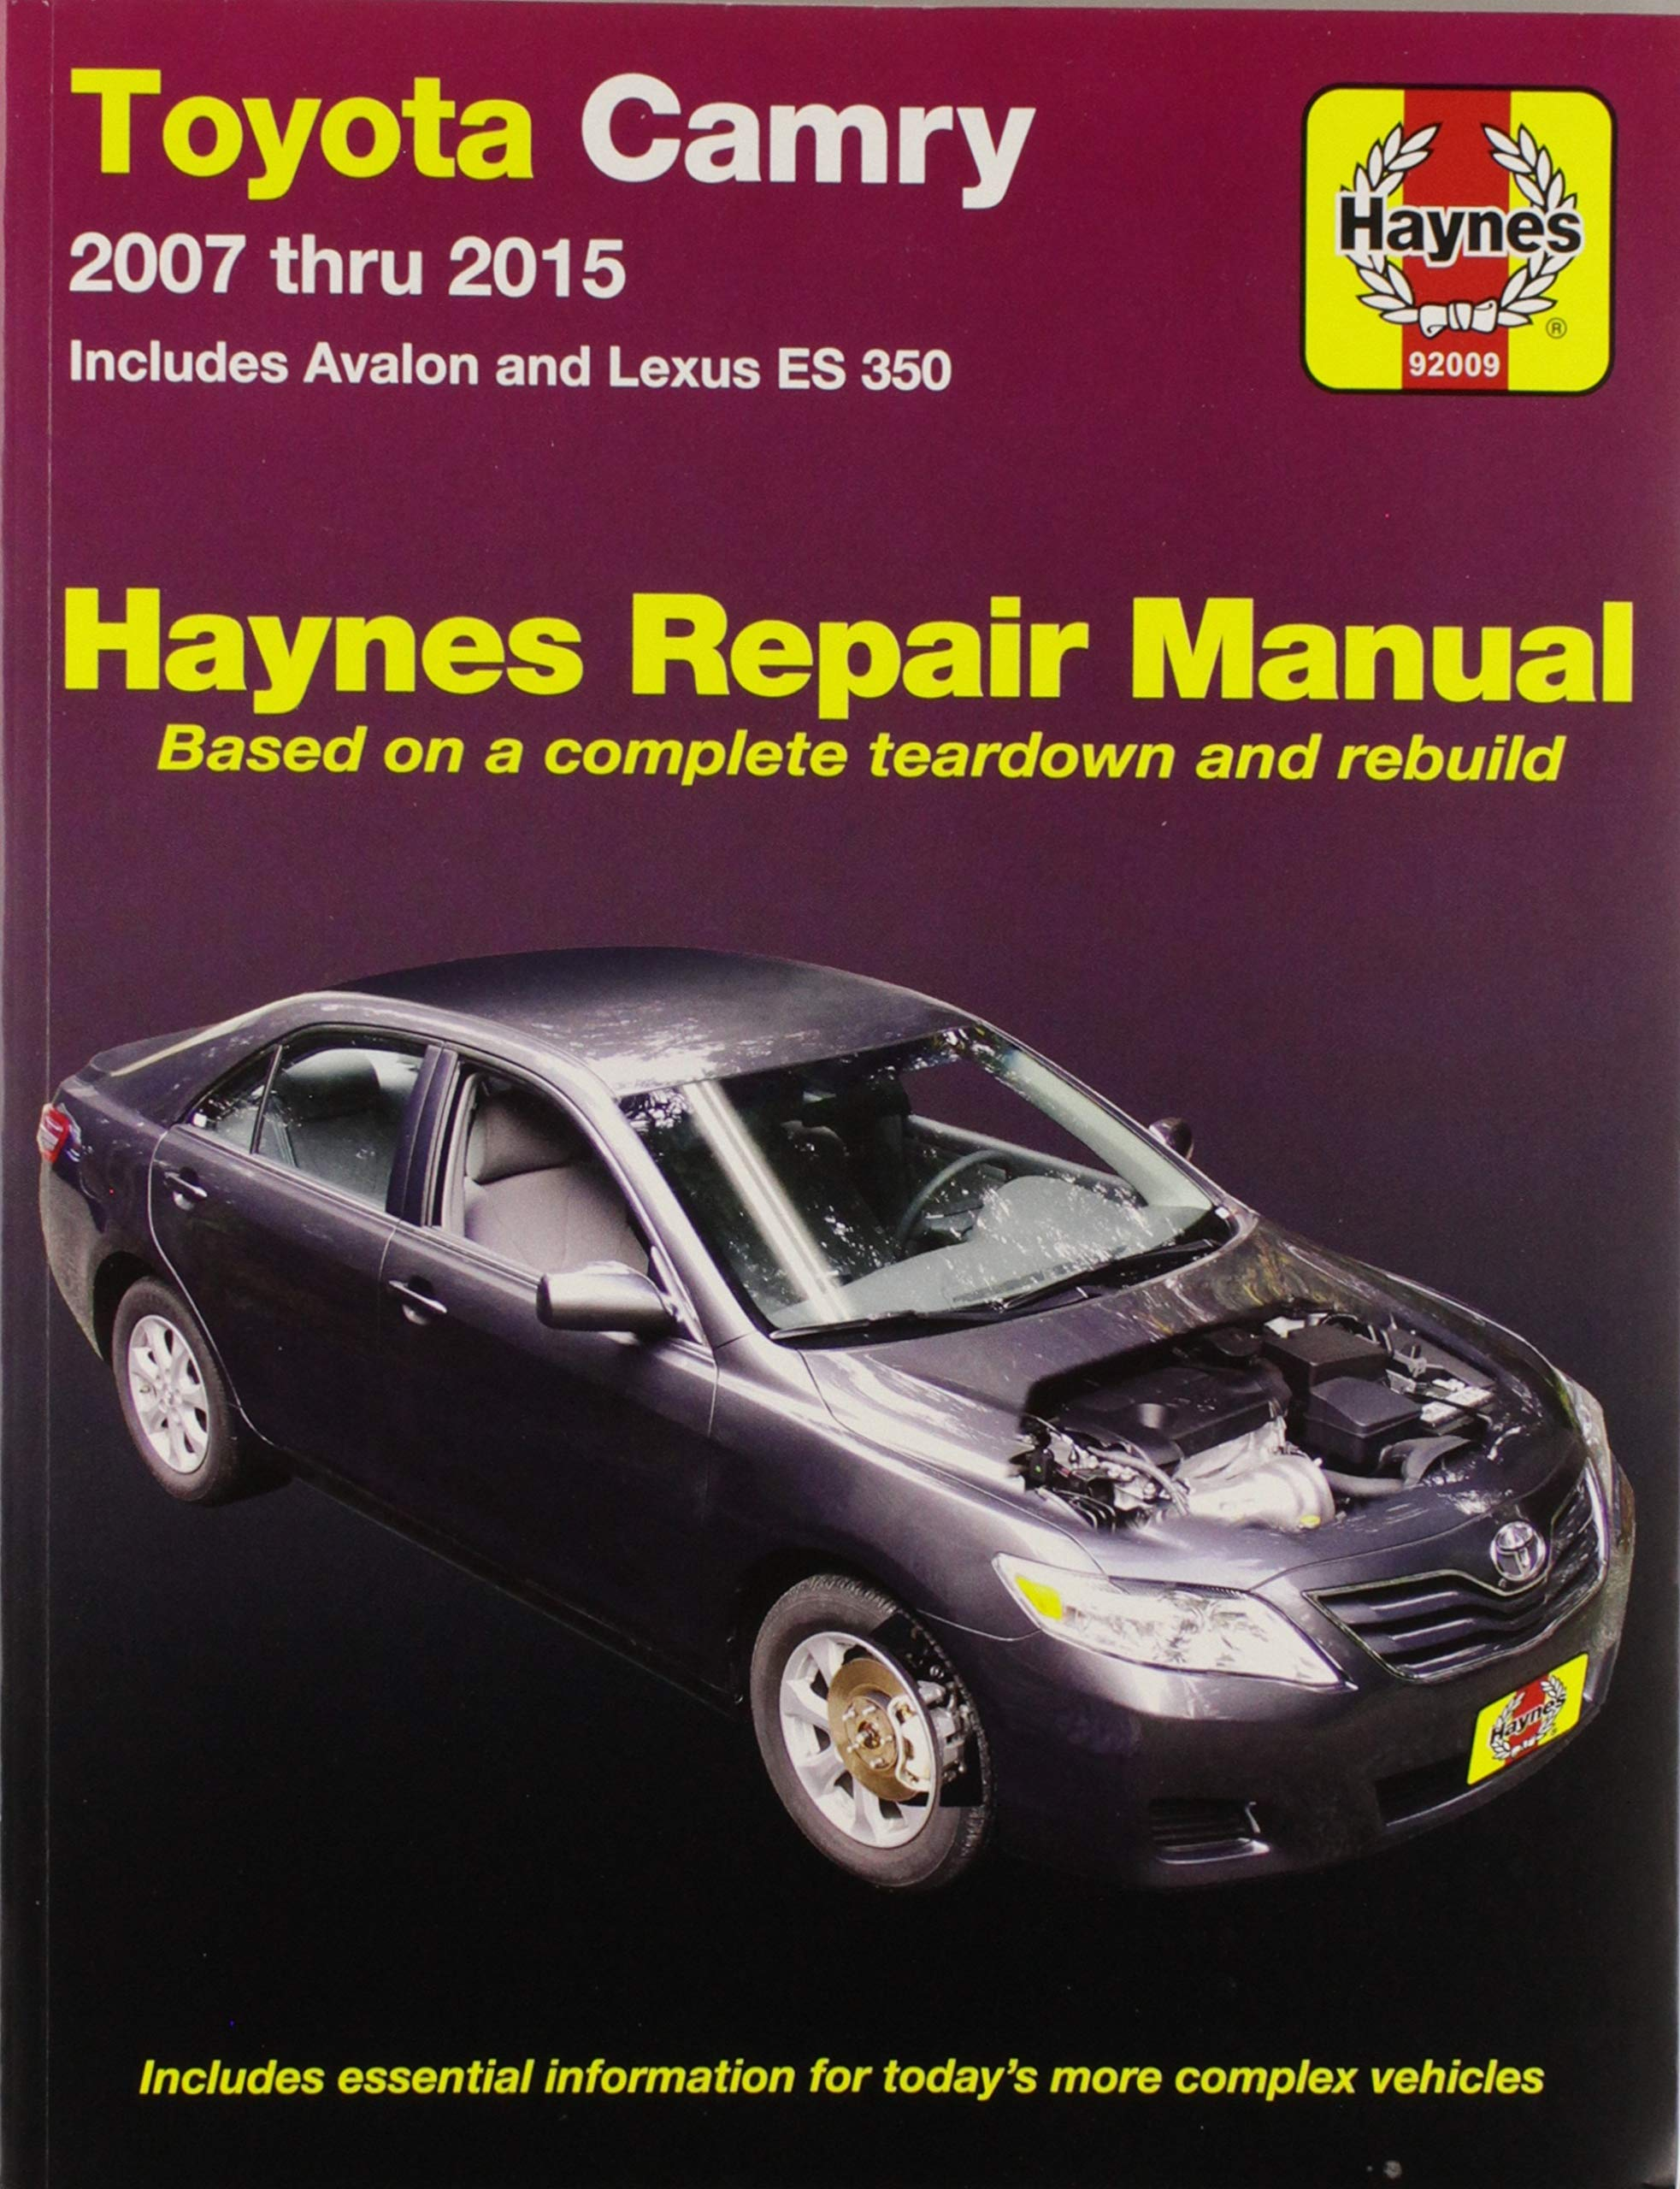 2002 Camry Starter Relay Diagram Wiring Diagram Photos For Help Your